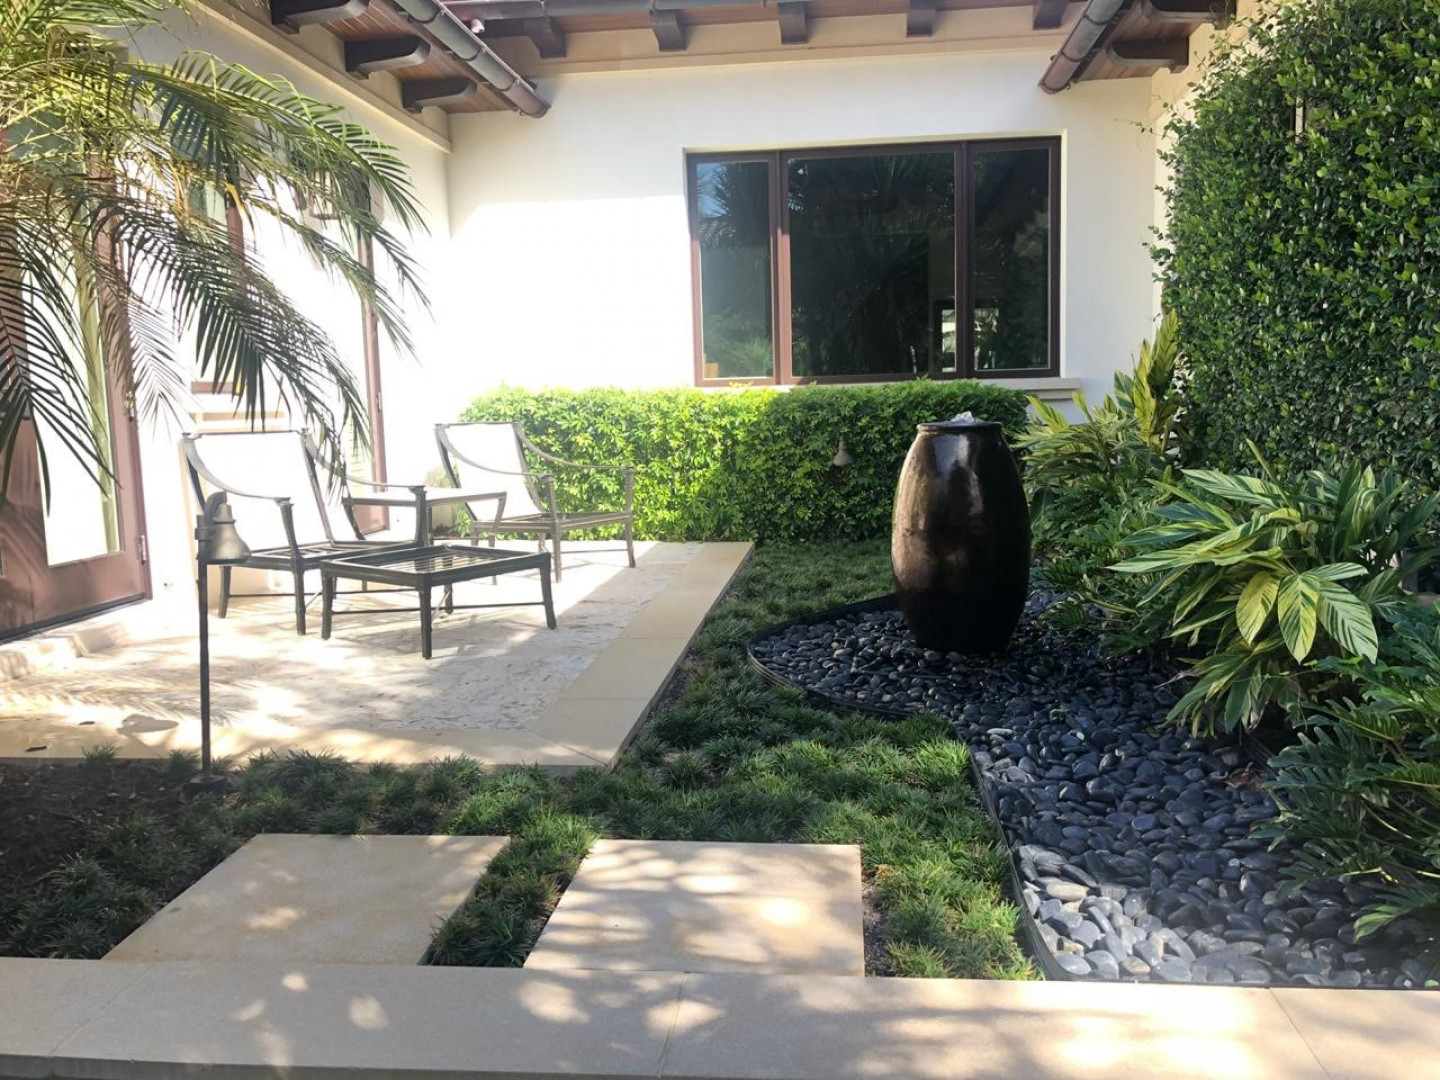 Lounge on a Gorgeous Patio This Summer, call Florida Environmental